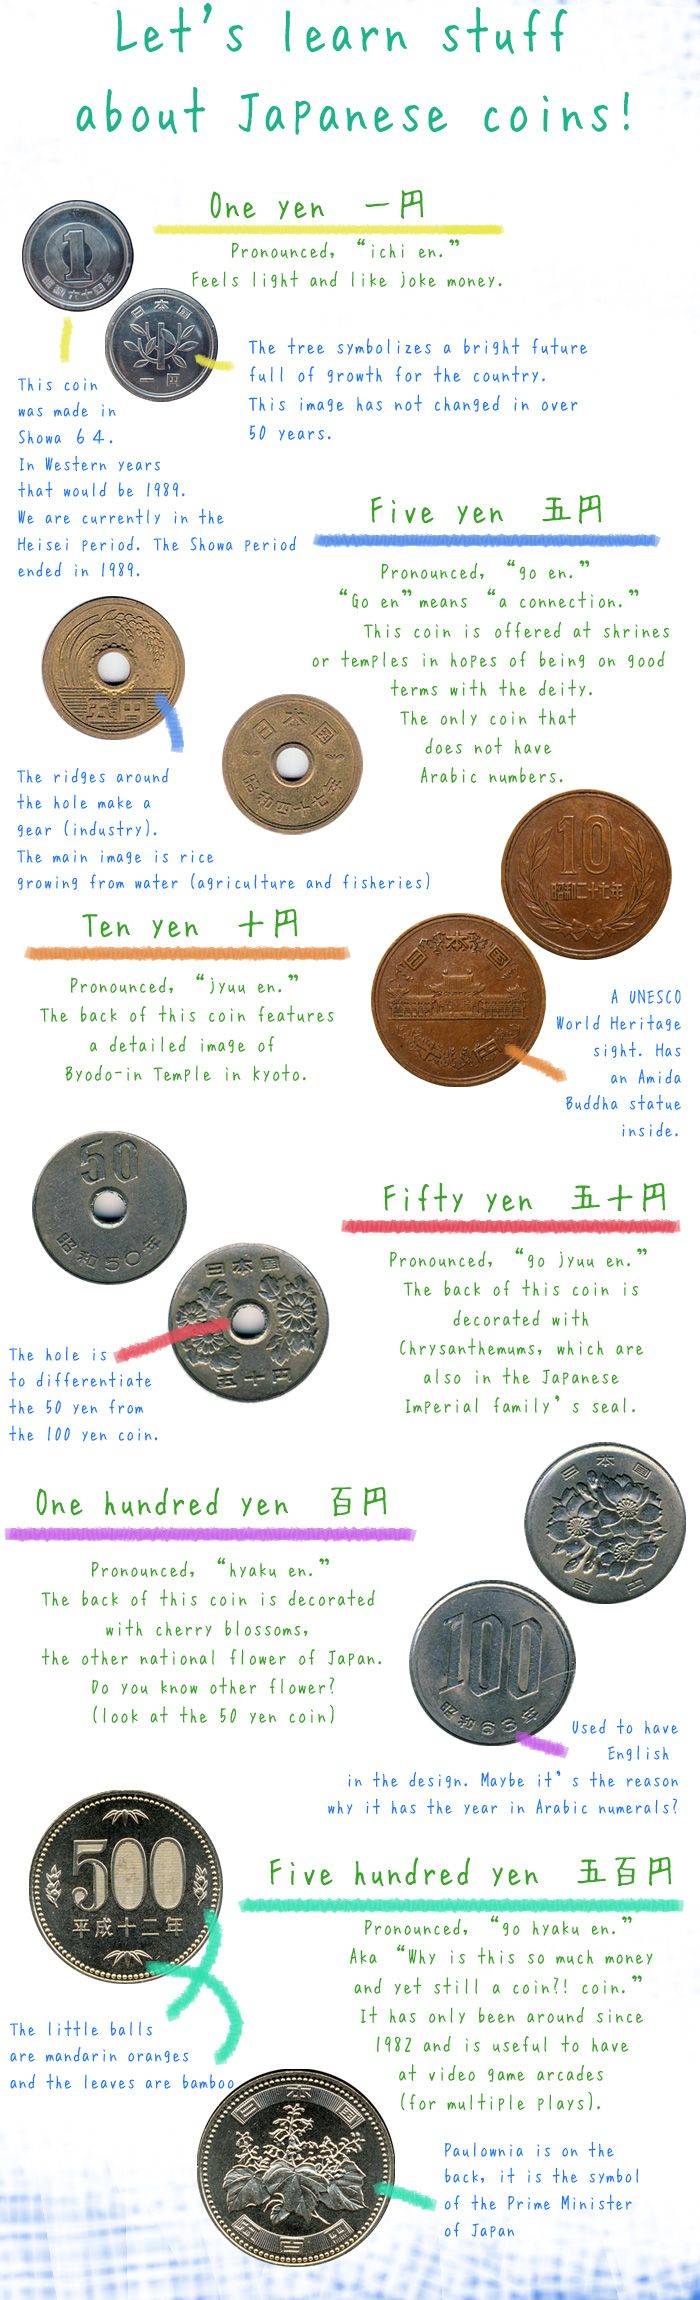 Did you know? The Ten Yen coin features a detailed image of Byodo-in Temple in Kyoto. Click the link to learn more about Japanese Yen.